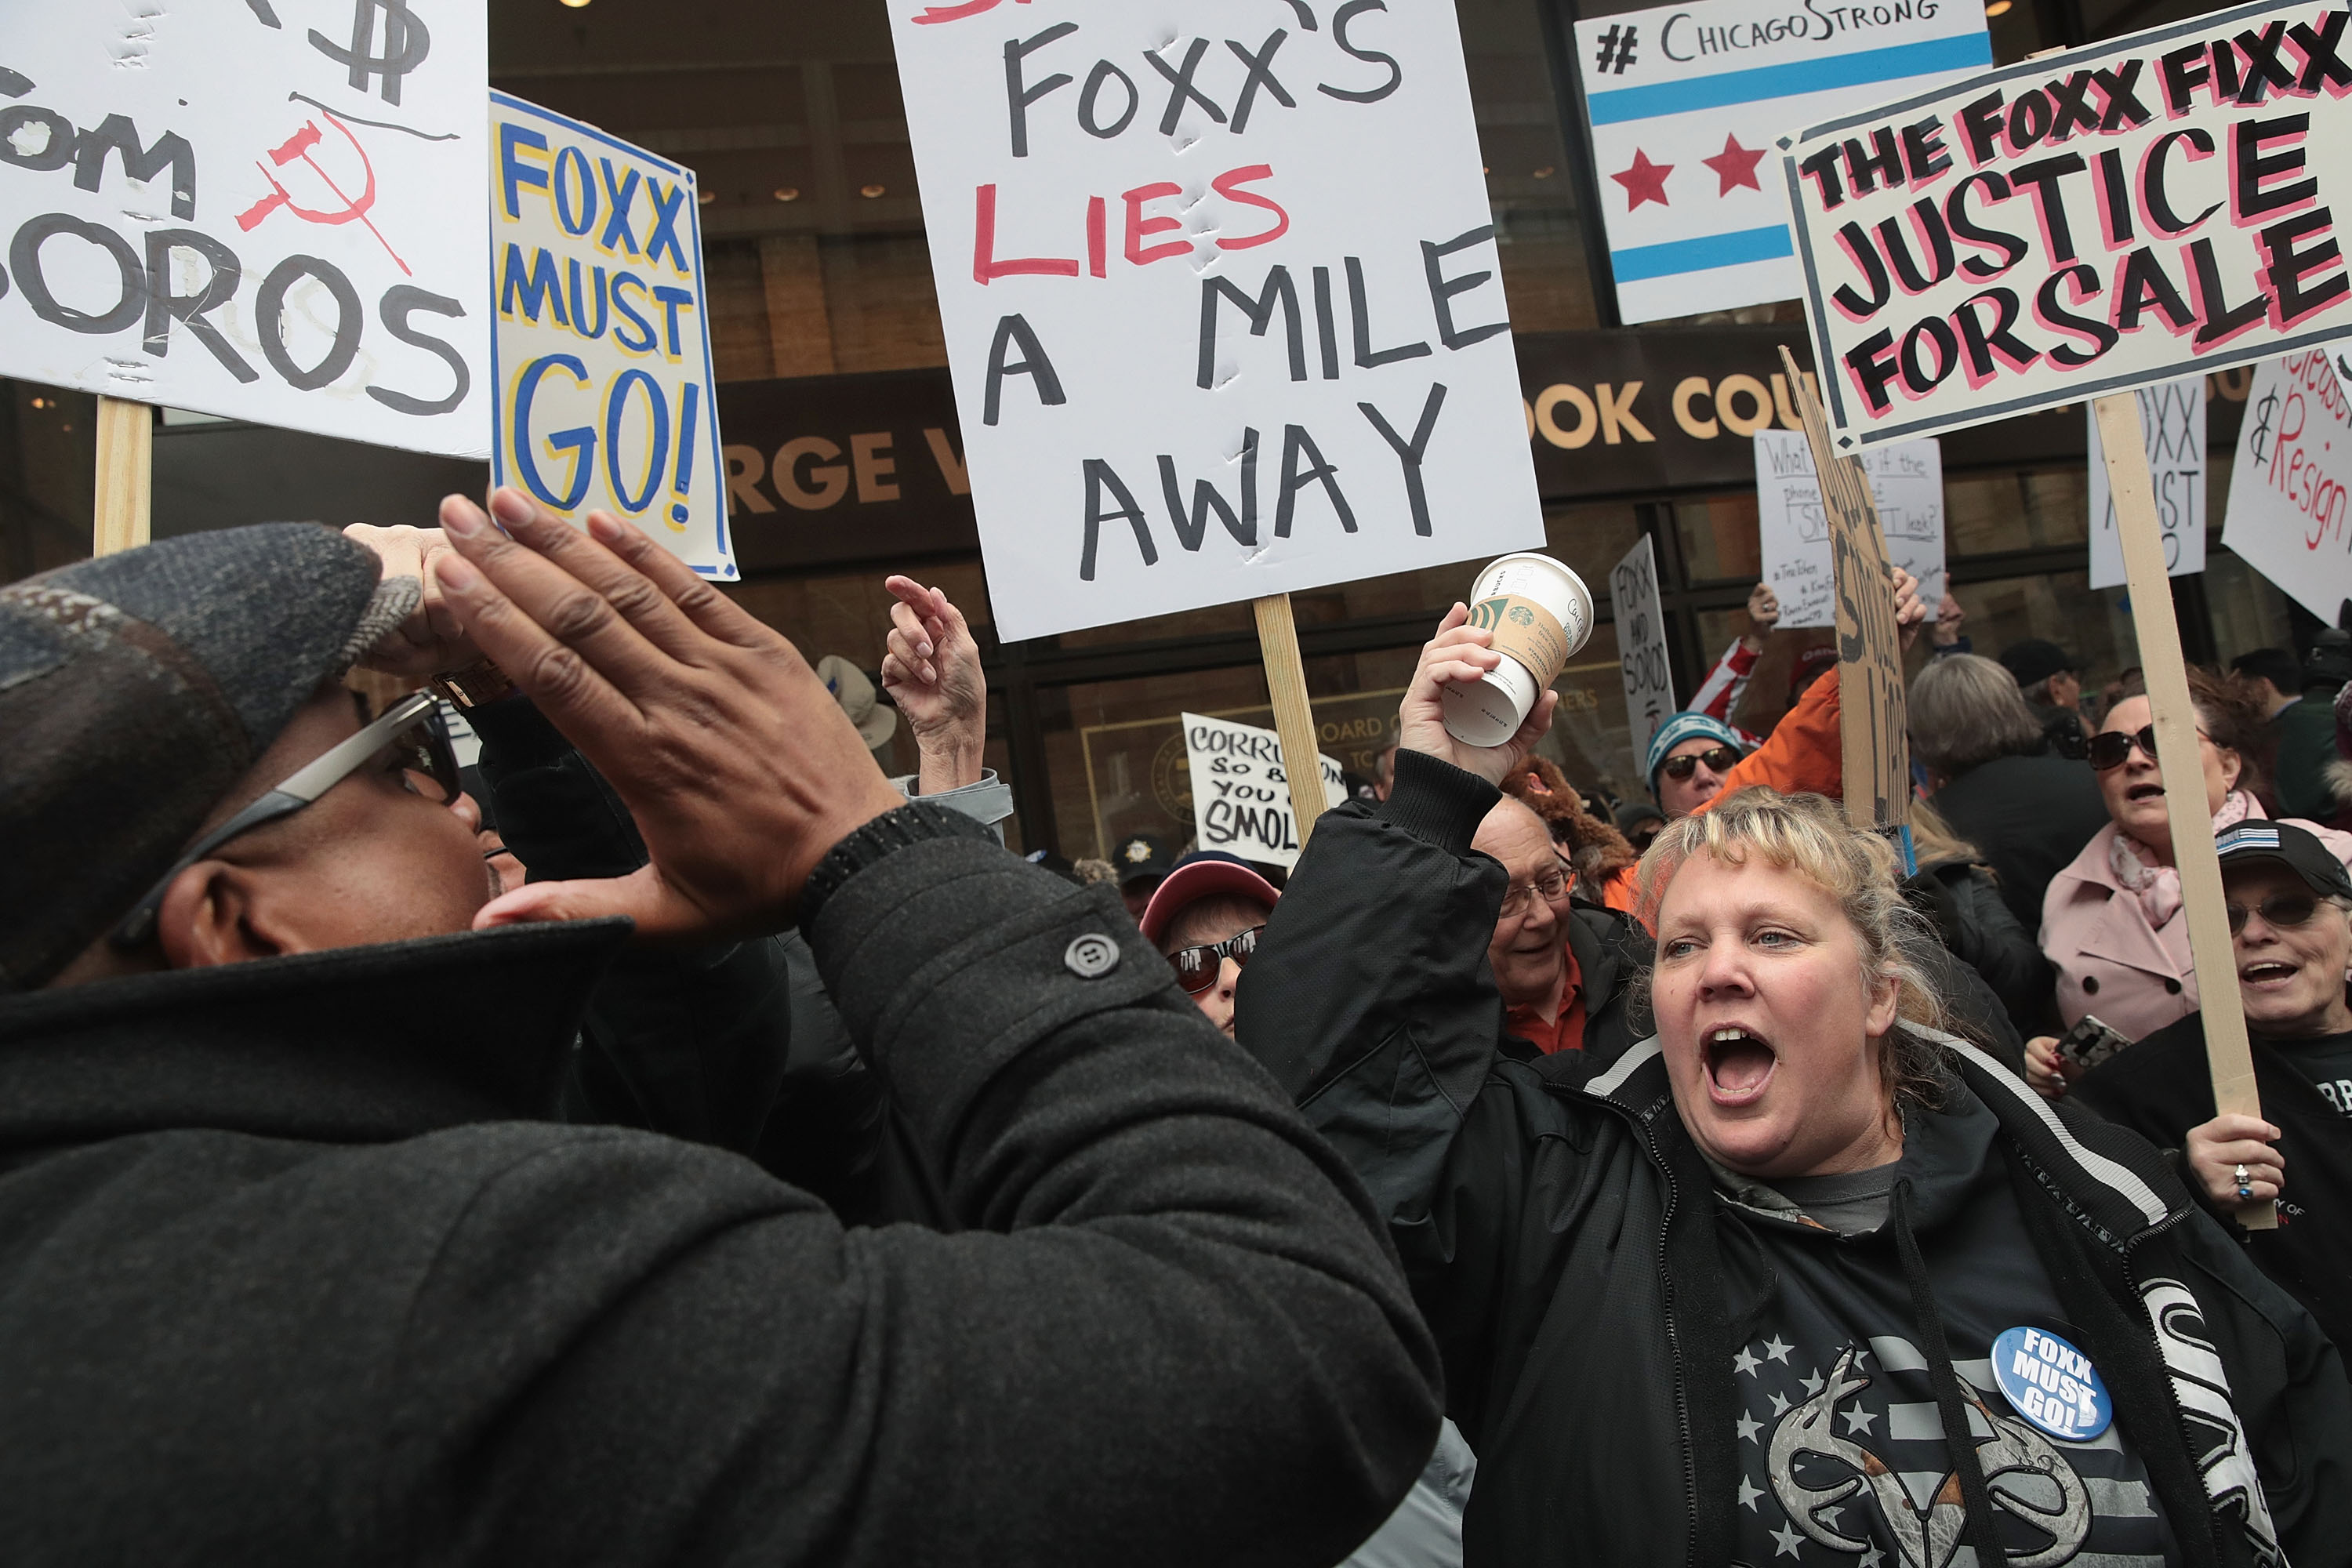 Supporters of Cook County State's Attorney Kim Foxx (L) argue with protestors during a demonstration organized by the Fraternal Order of Police to call for Foxx's removal on April 01, 2019 in Chicago, Illinois. (Scott Olson/Getty Images)